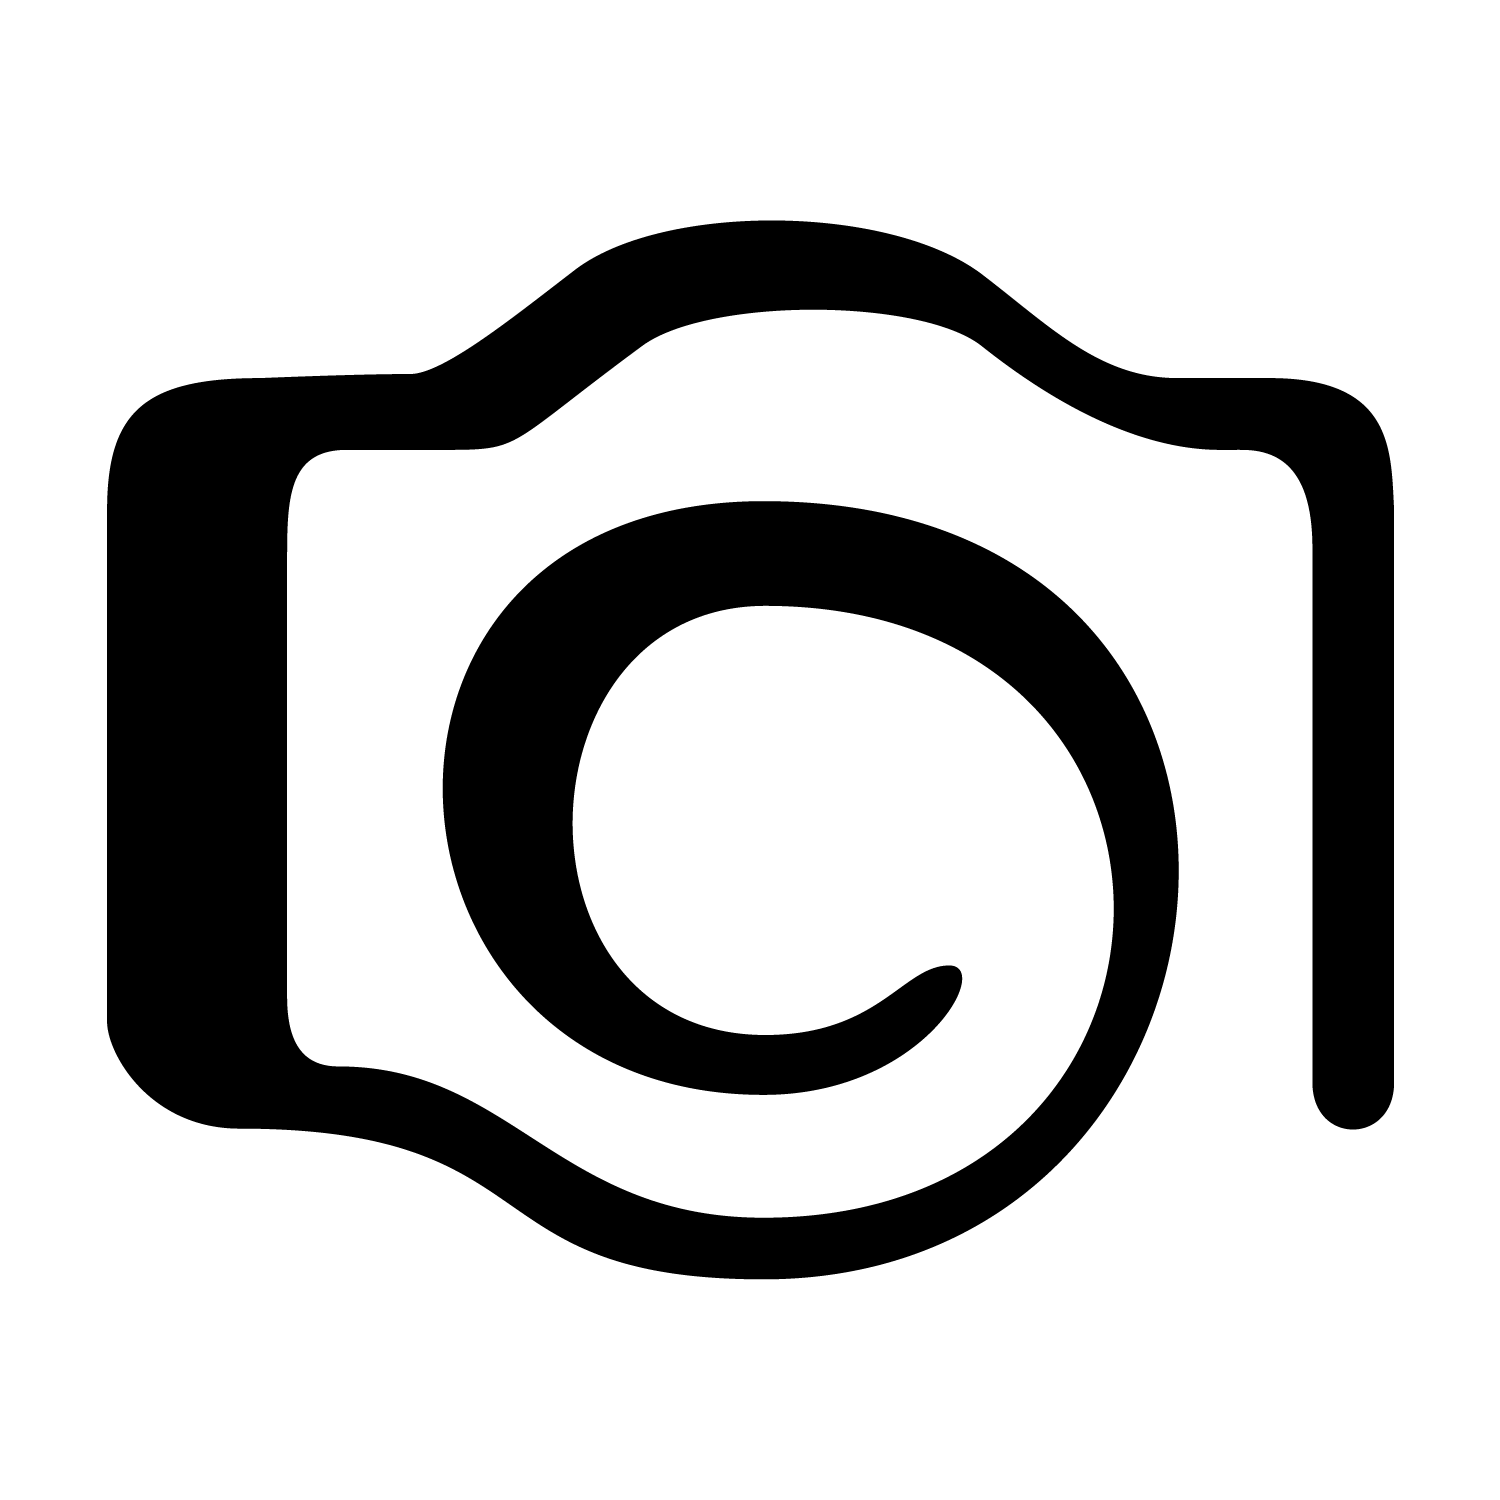 photography logo, camera logo png download best camera logo png #25074